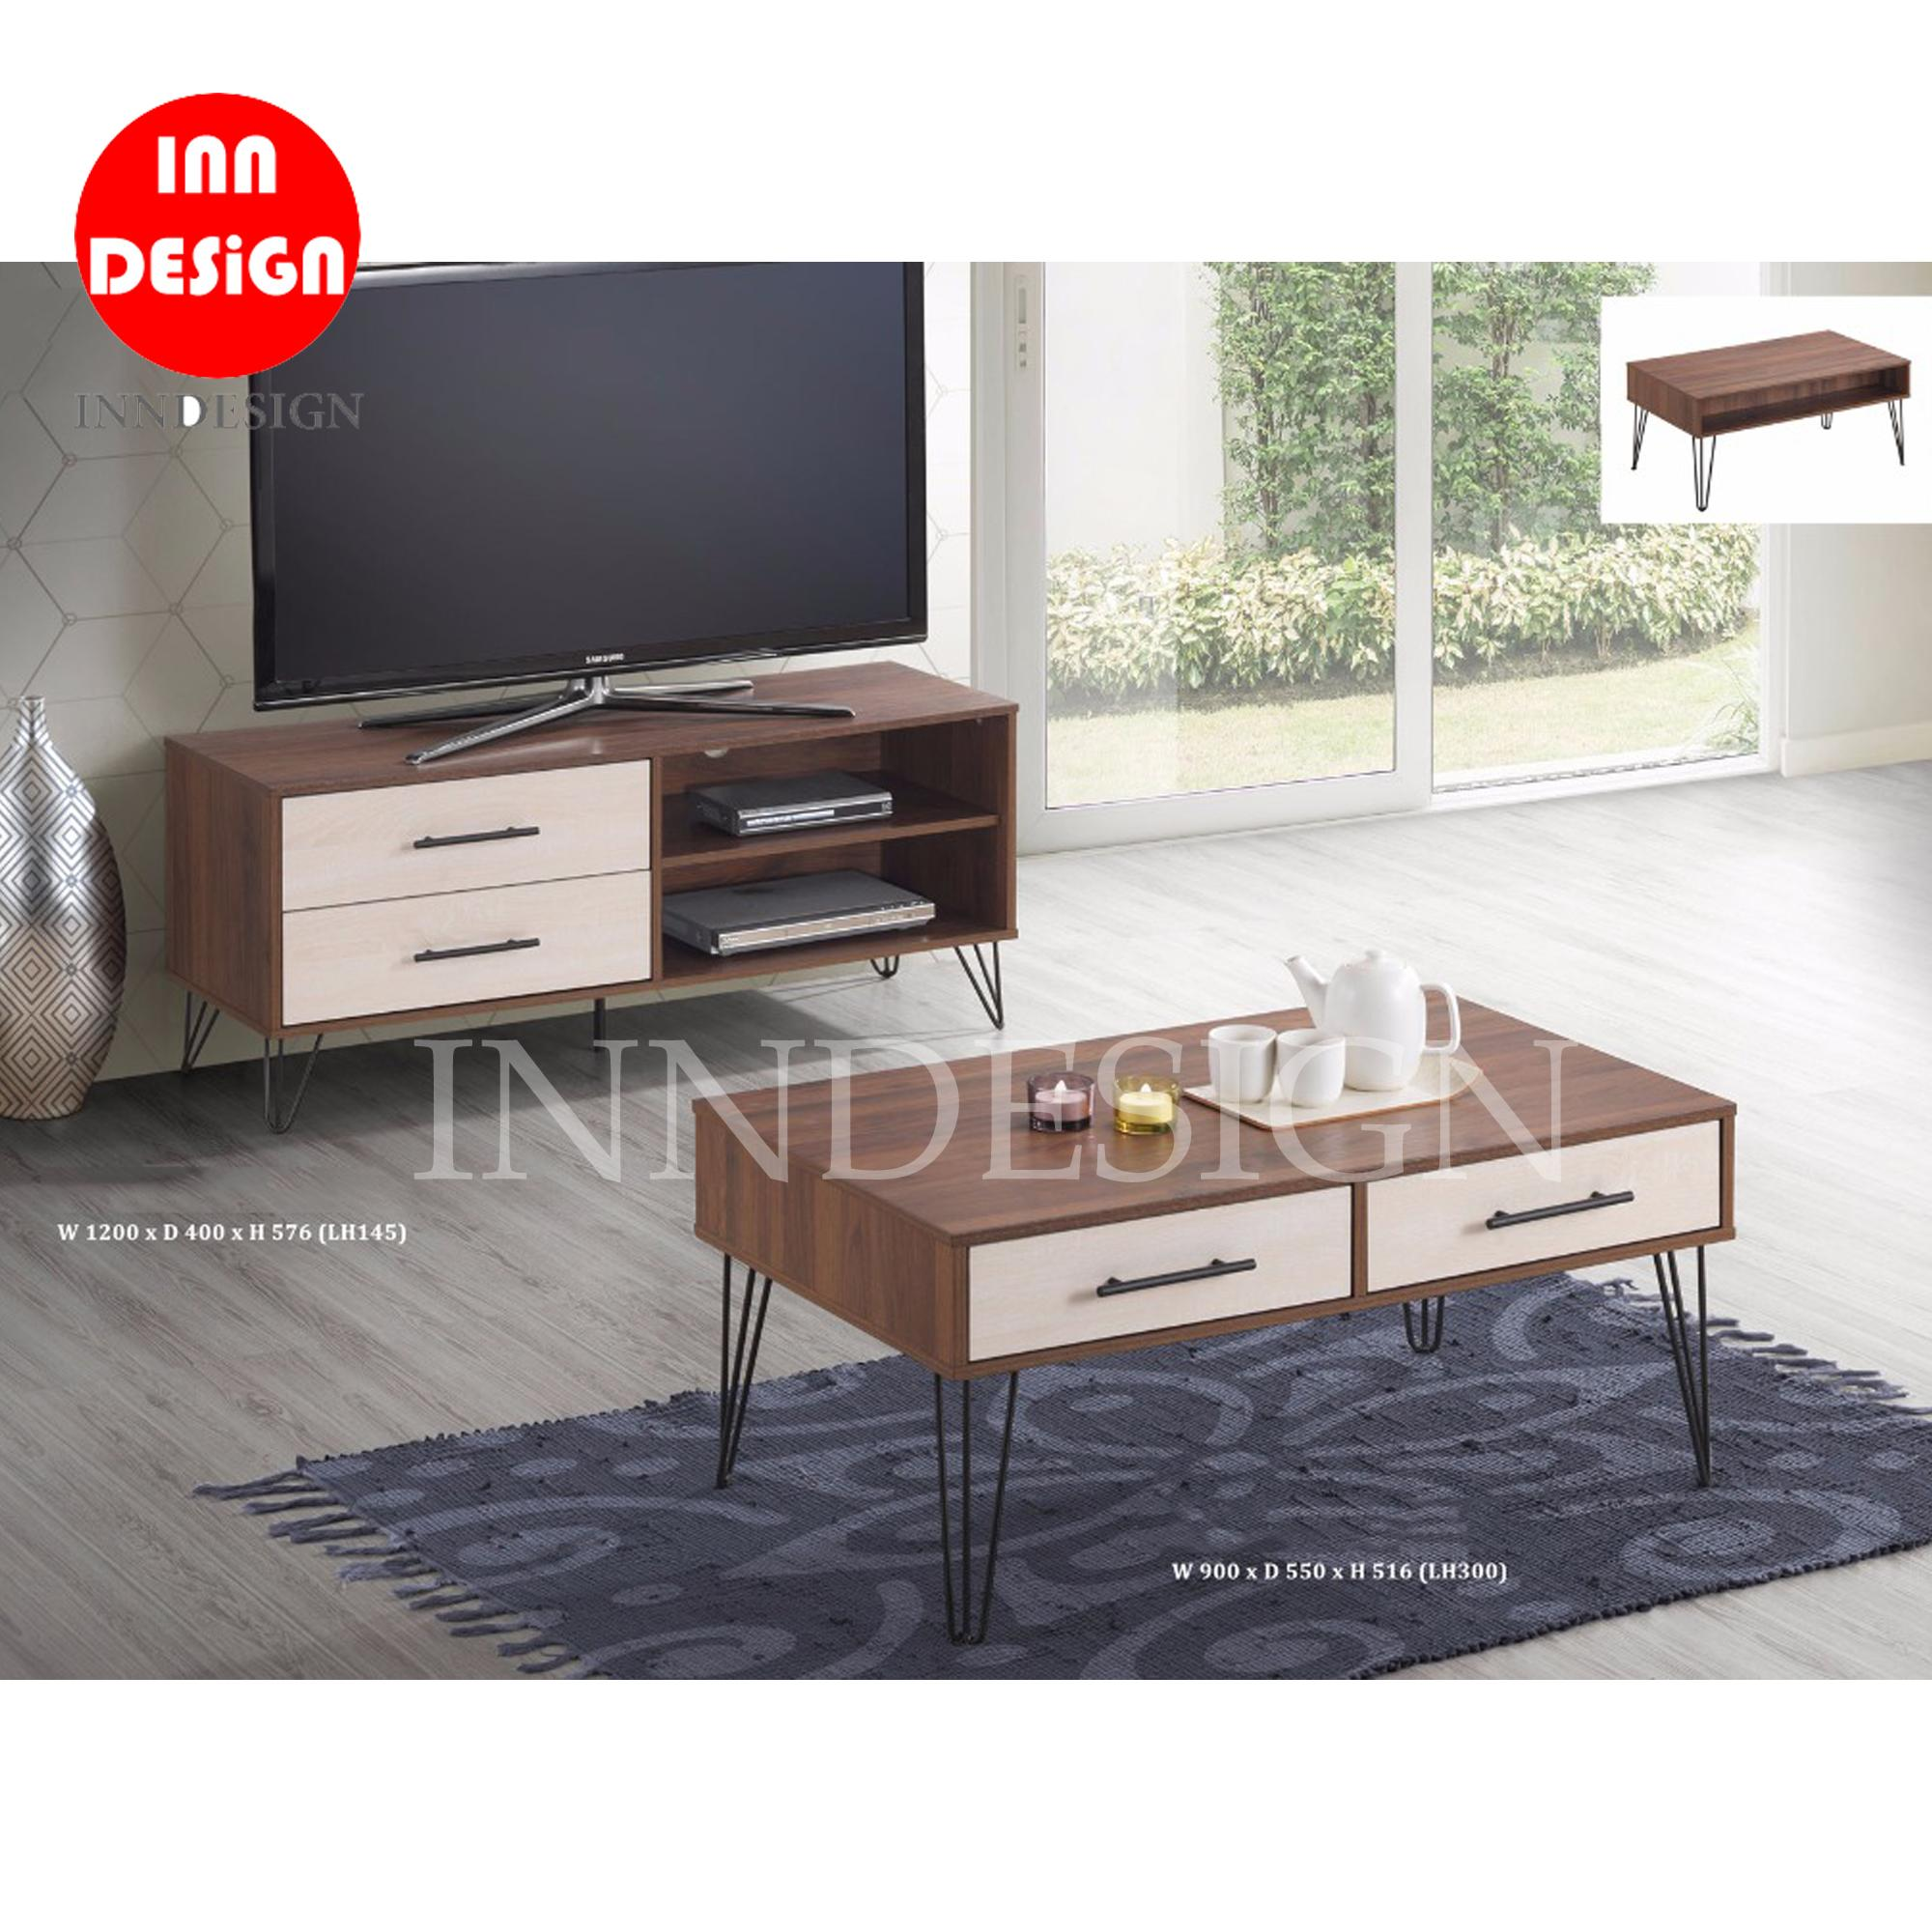 Jame 4ft TV Console + Coffee Table Combo Set